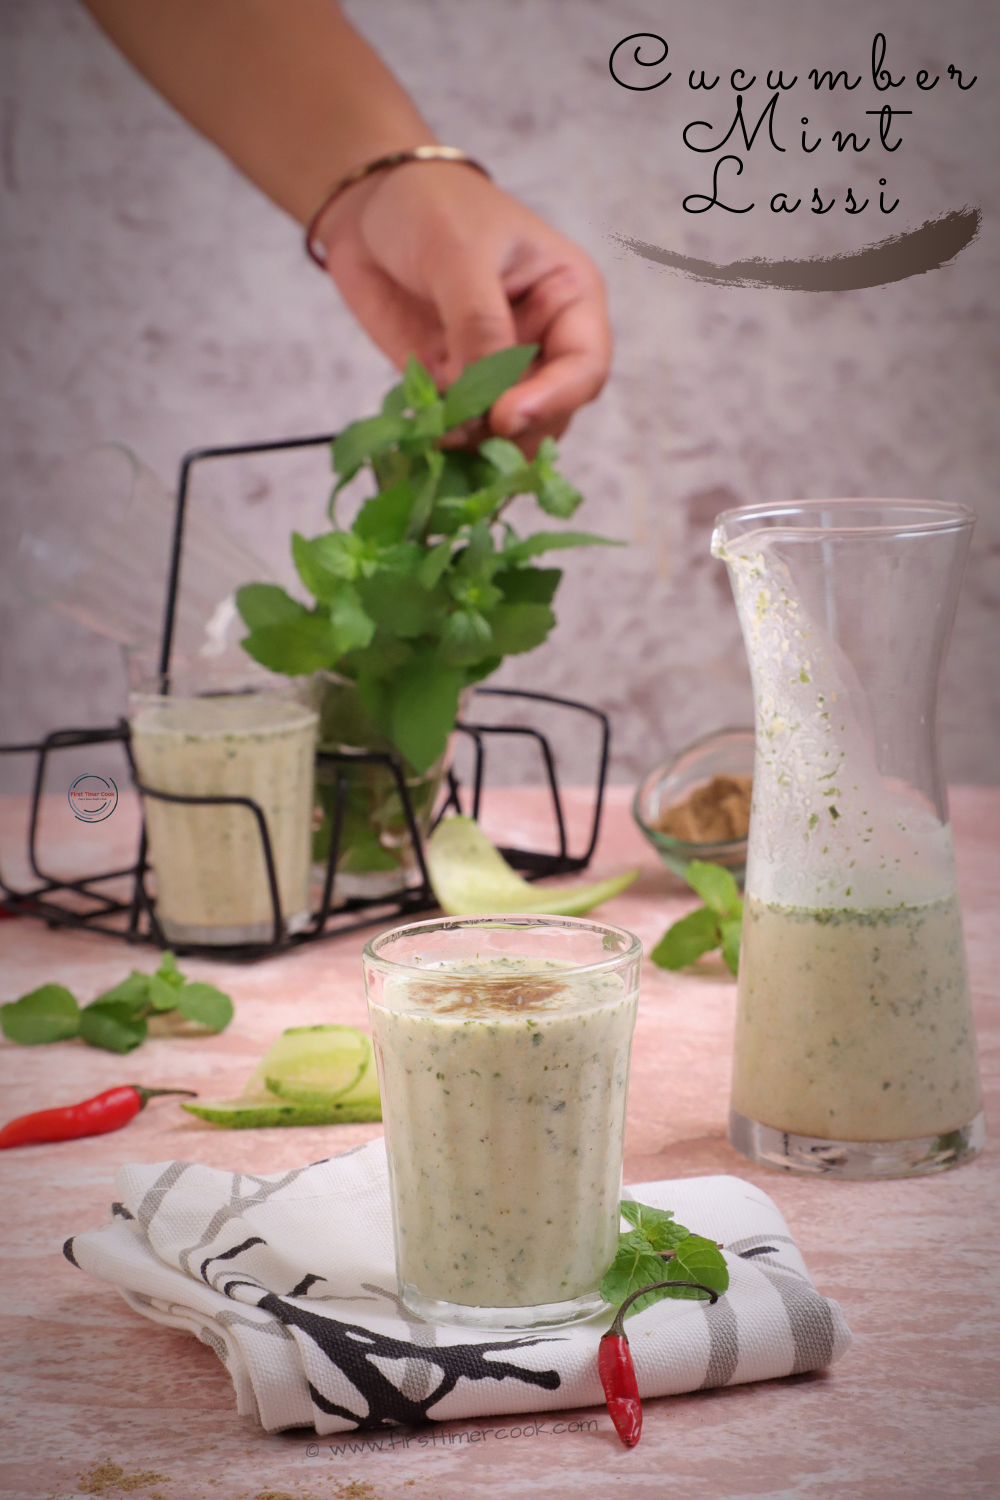 Cucumber Mint Lassi